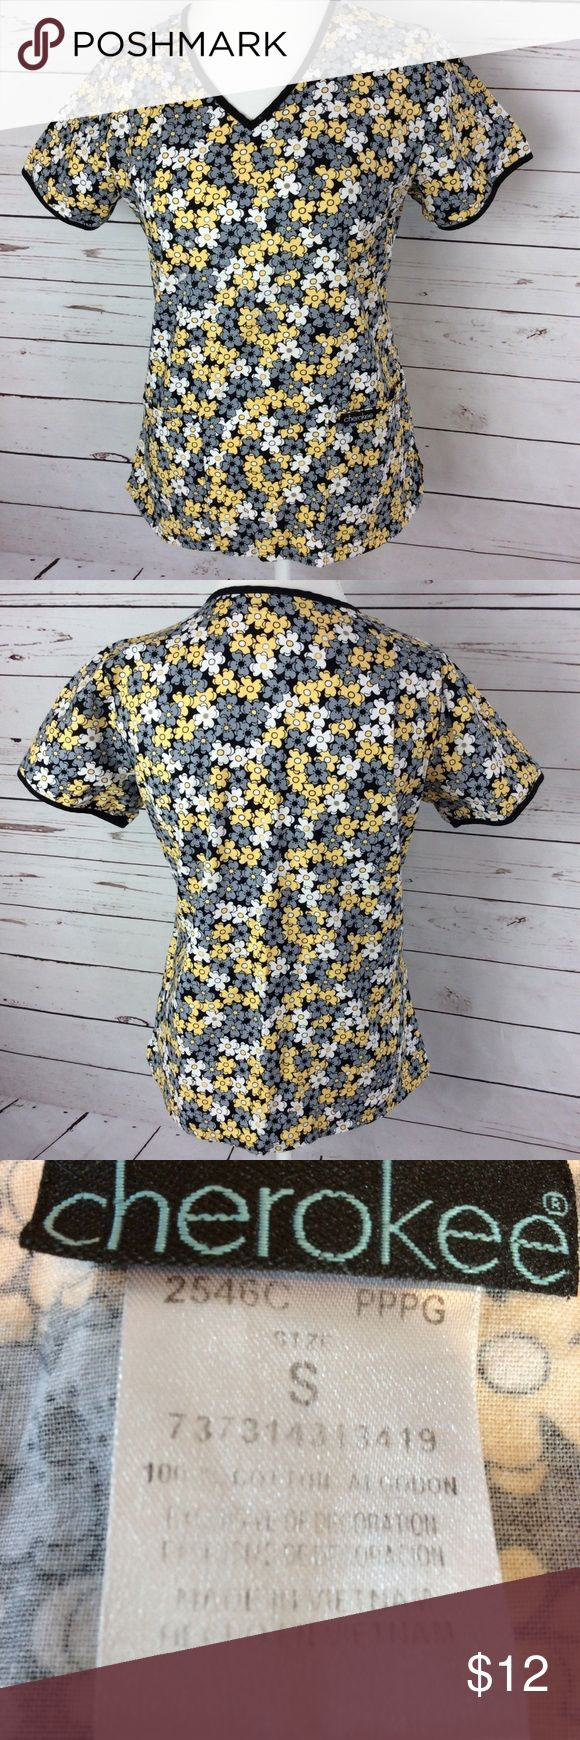 Cherokee Scrub Womens Top Size S Flower Multicolor 100% money back guarantee, free returns and excellent customer service.  Your item will ship within 24 hours after payment is received (excluding weekends and Holidays)  Please let us know if you have any questions.   Cherokee Scrub Womens Top Size S Flowers Black Yellow Gray White Nursing  #2546C  Location: F7  Our items are all from a pet free, smoke free home.  Items are purchased locally or donated so we are not aware if they have…